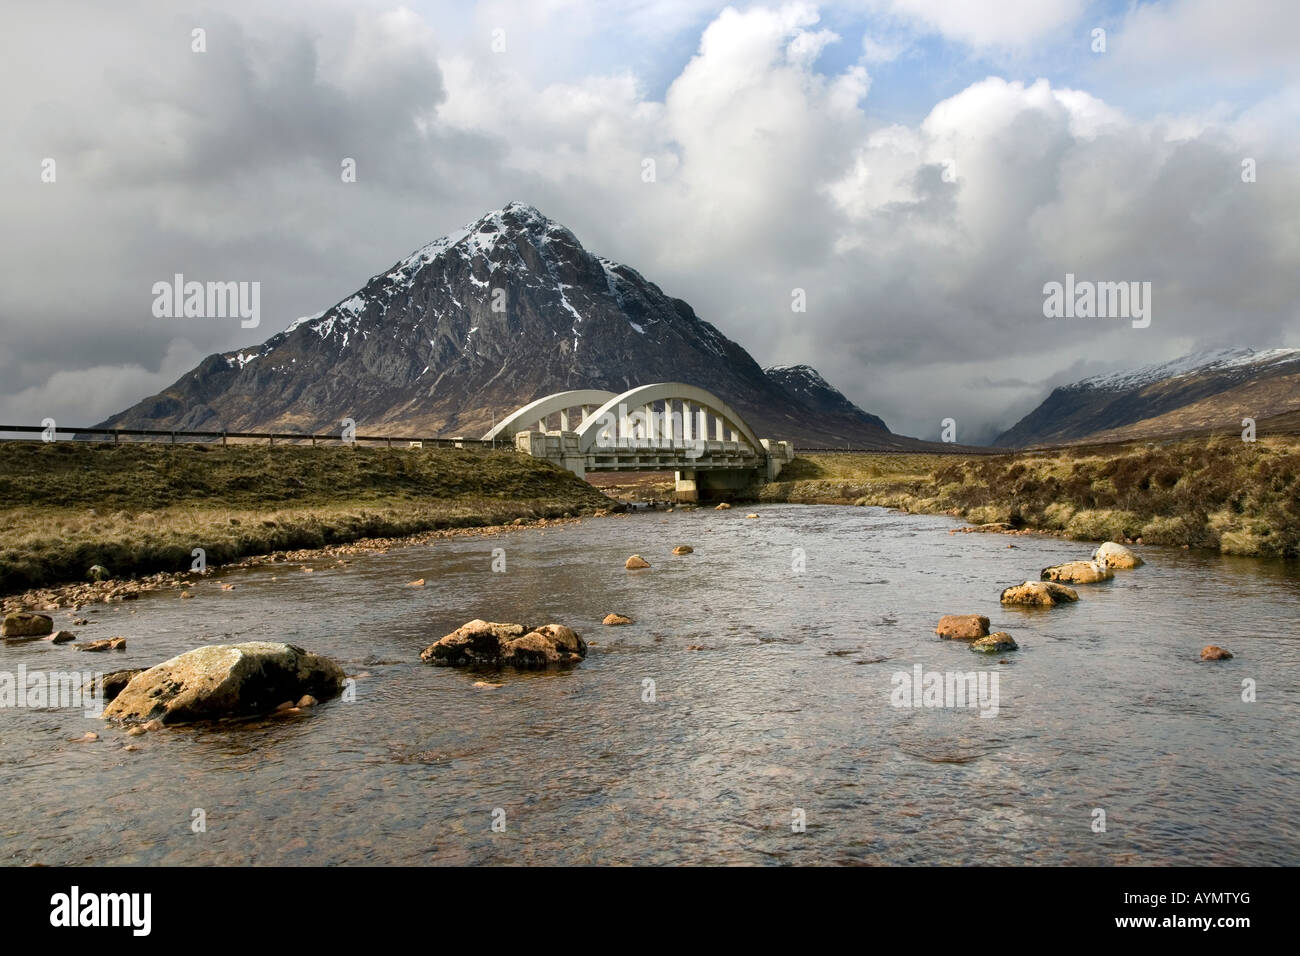 River and Road Bridge at Buachaille Etive Mor at Glencoe, Glen Coe in the Lochaber area of the Scottish Highlands, - Stock Image